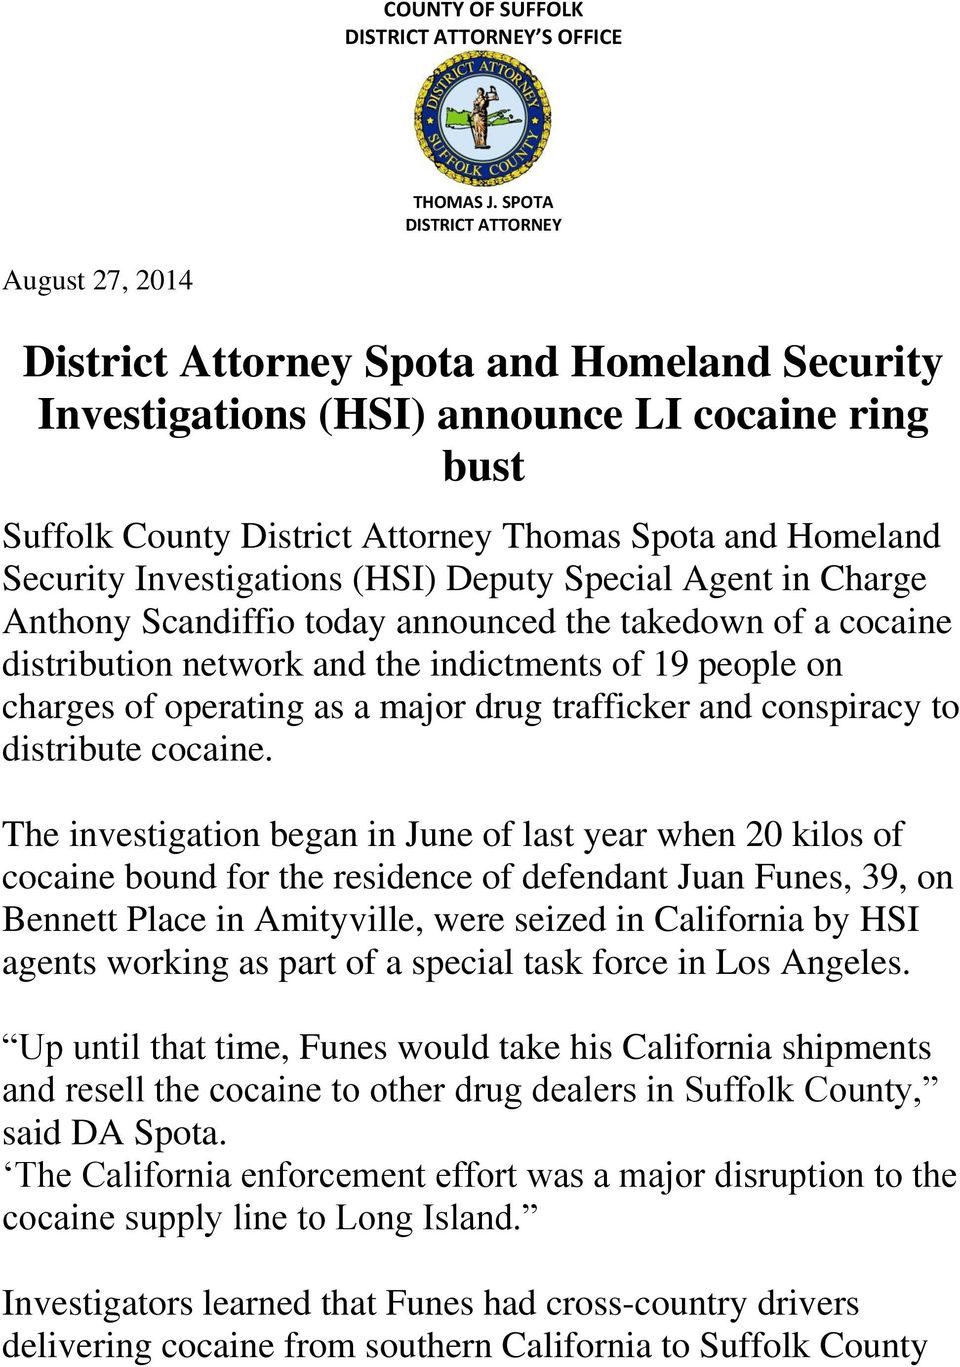 Security Investigations (HSI) Deputy Special Agent in Charge Anthony Scandiffio today announced the takedown of a cocaine distribution network and the indictments of 19 people on charges of operating